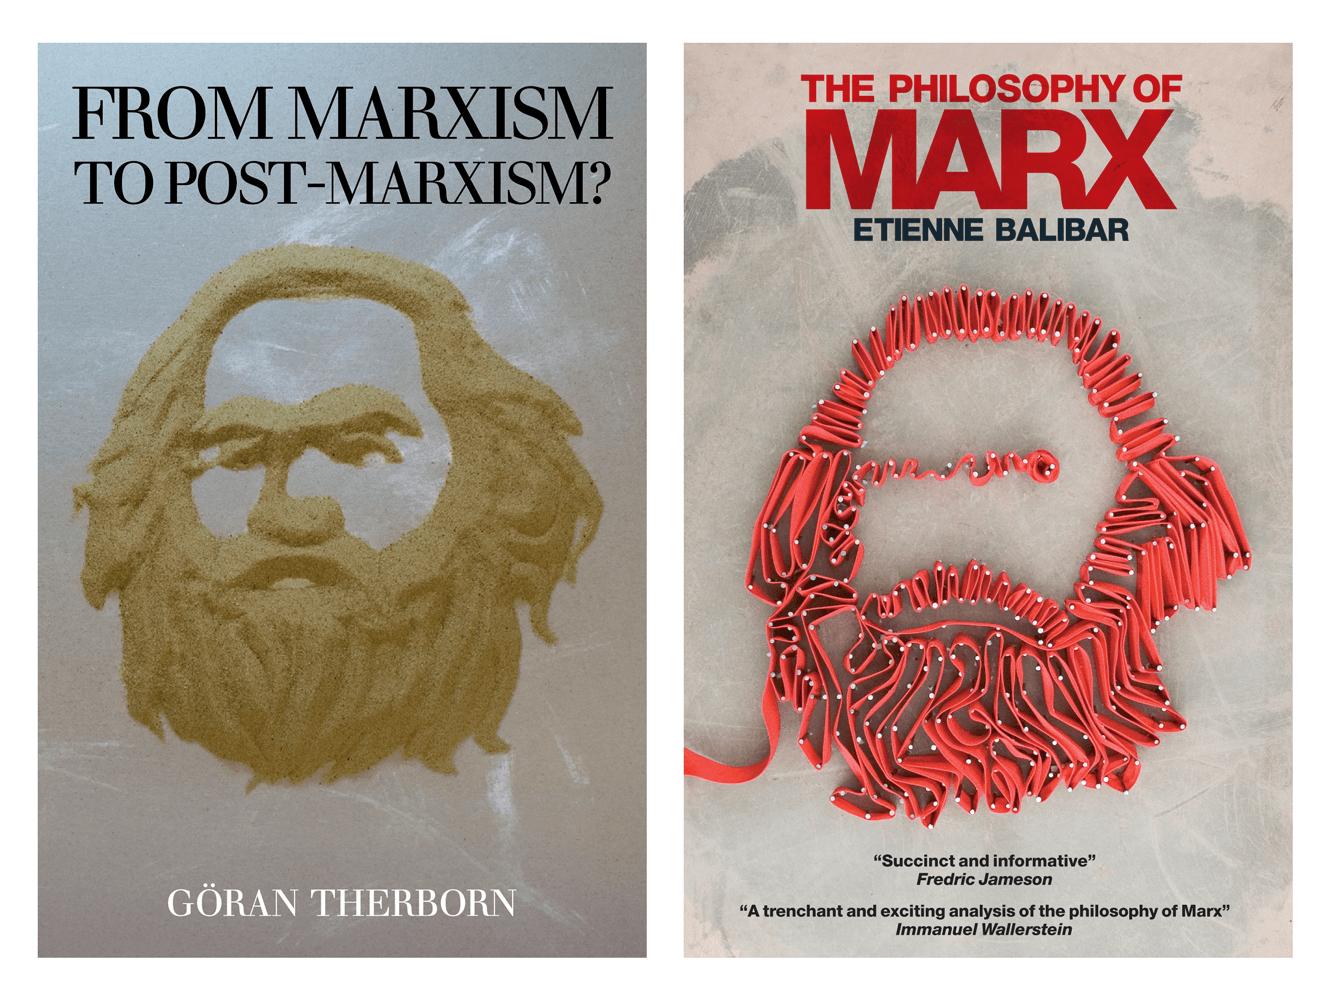 Book Cover Designs For Marxism To Post Marxism And The Philosophy Of Marx Book By Verso Books. Designed By &&& Creative